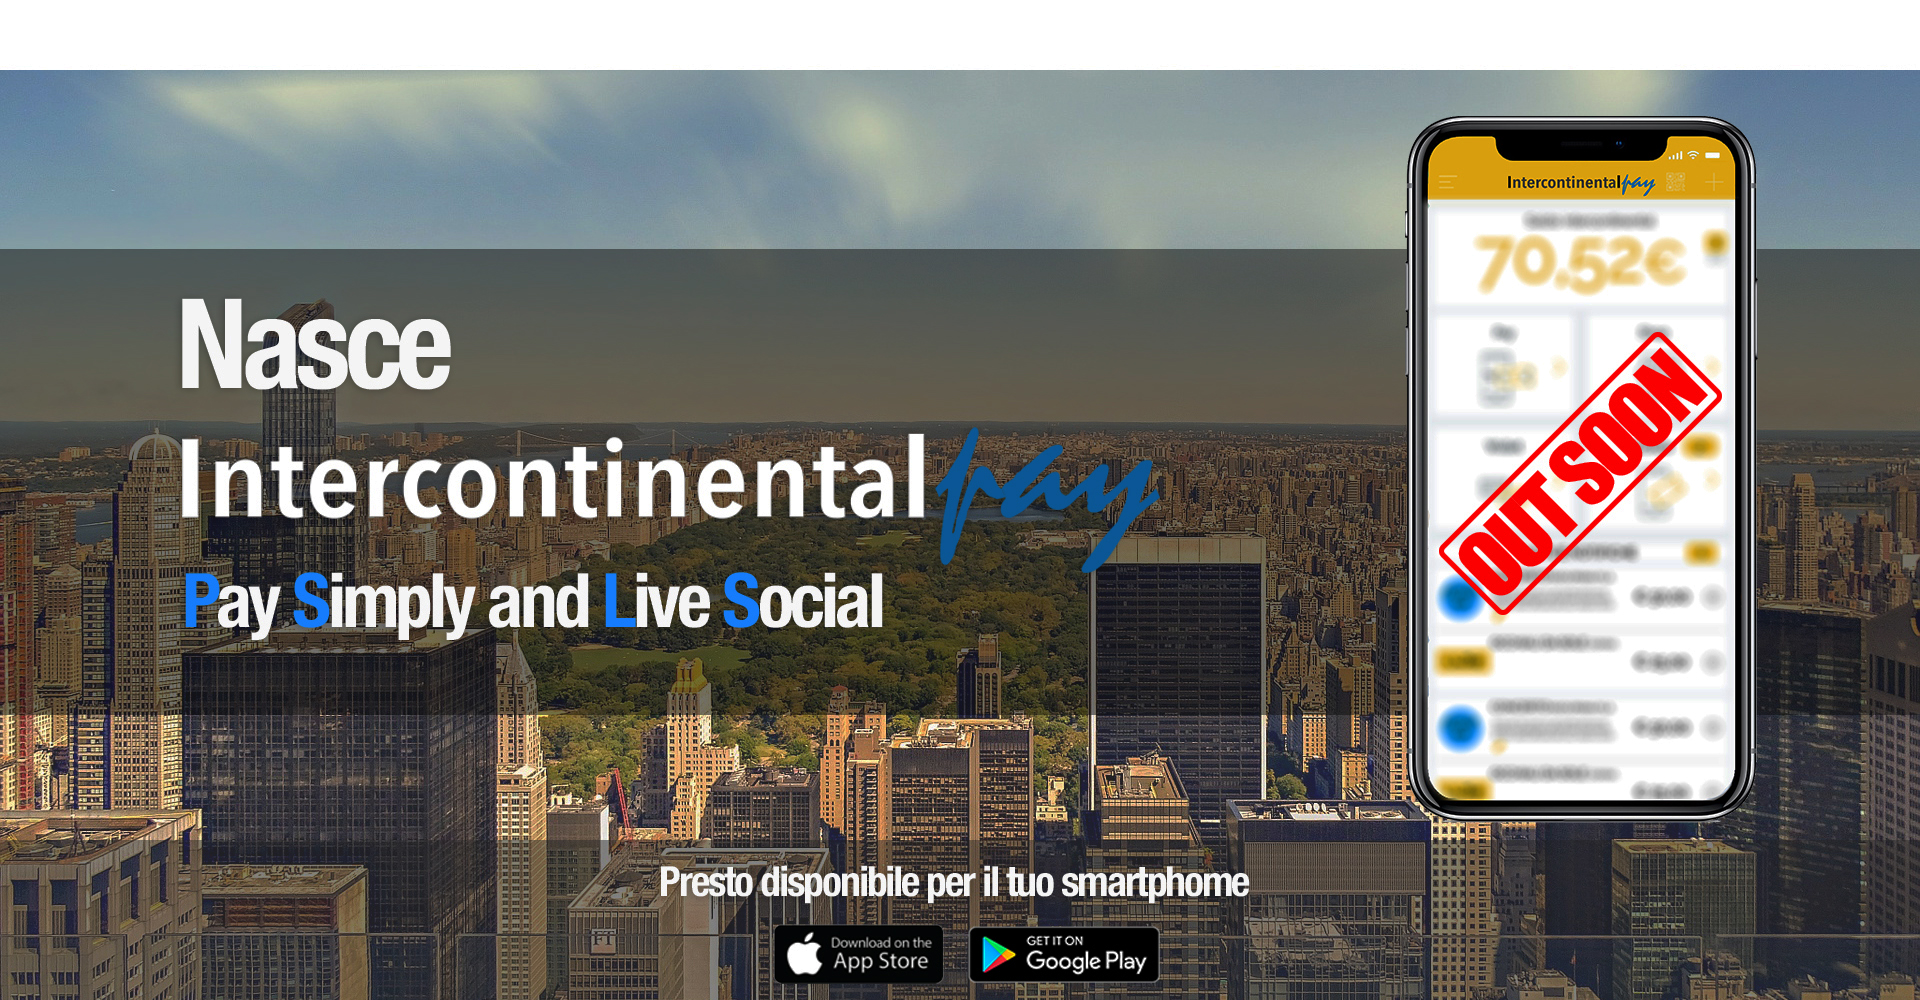 IntercontinentalPay pay simply live social soon on line wallet smartbank